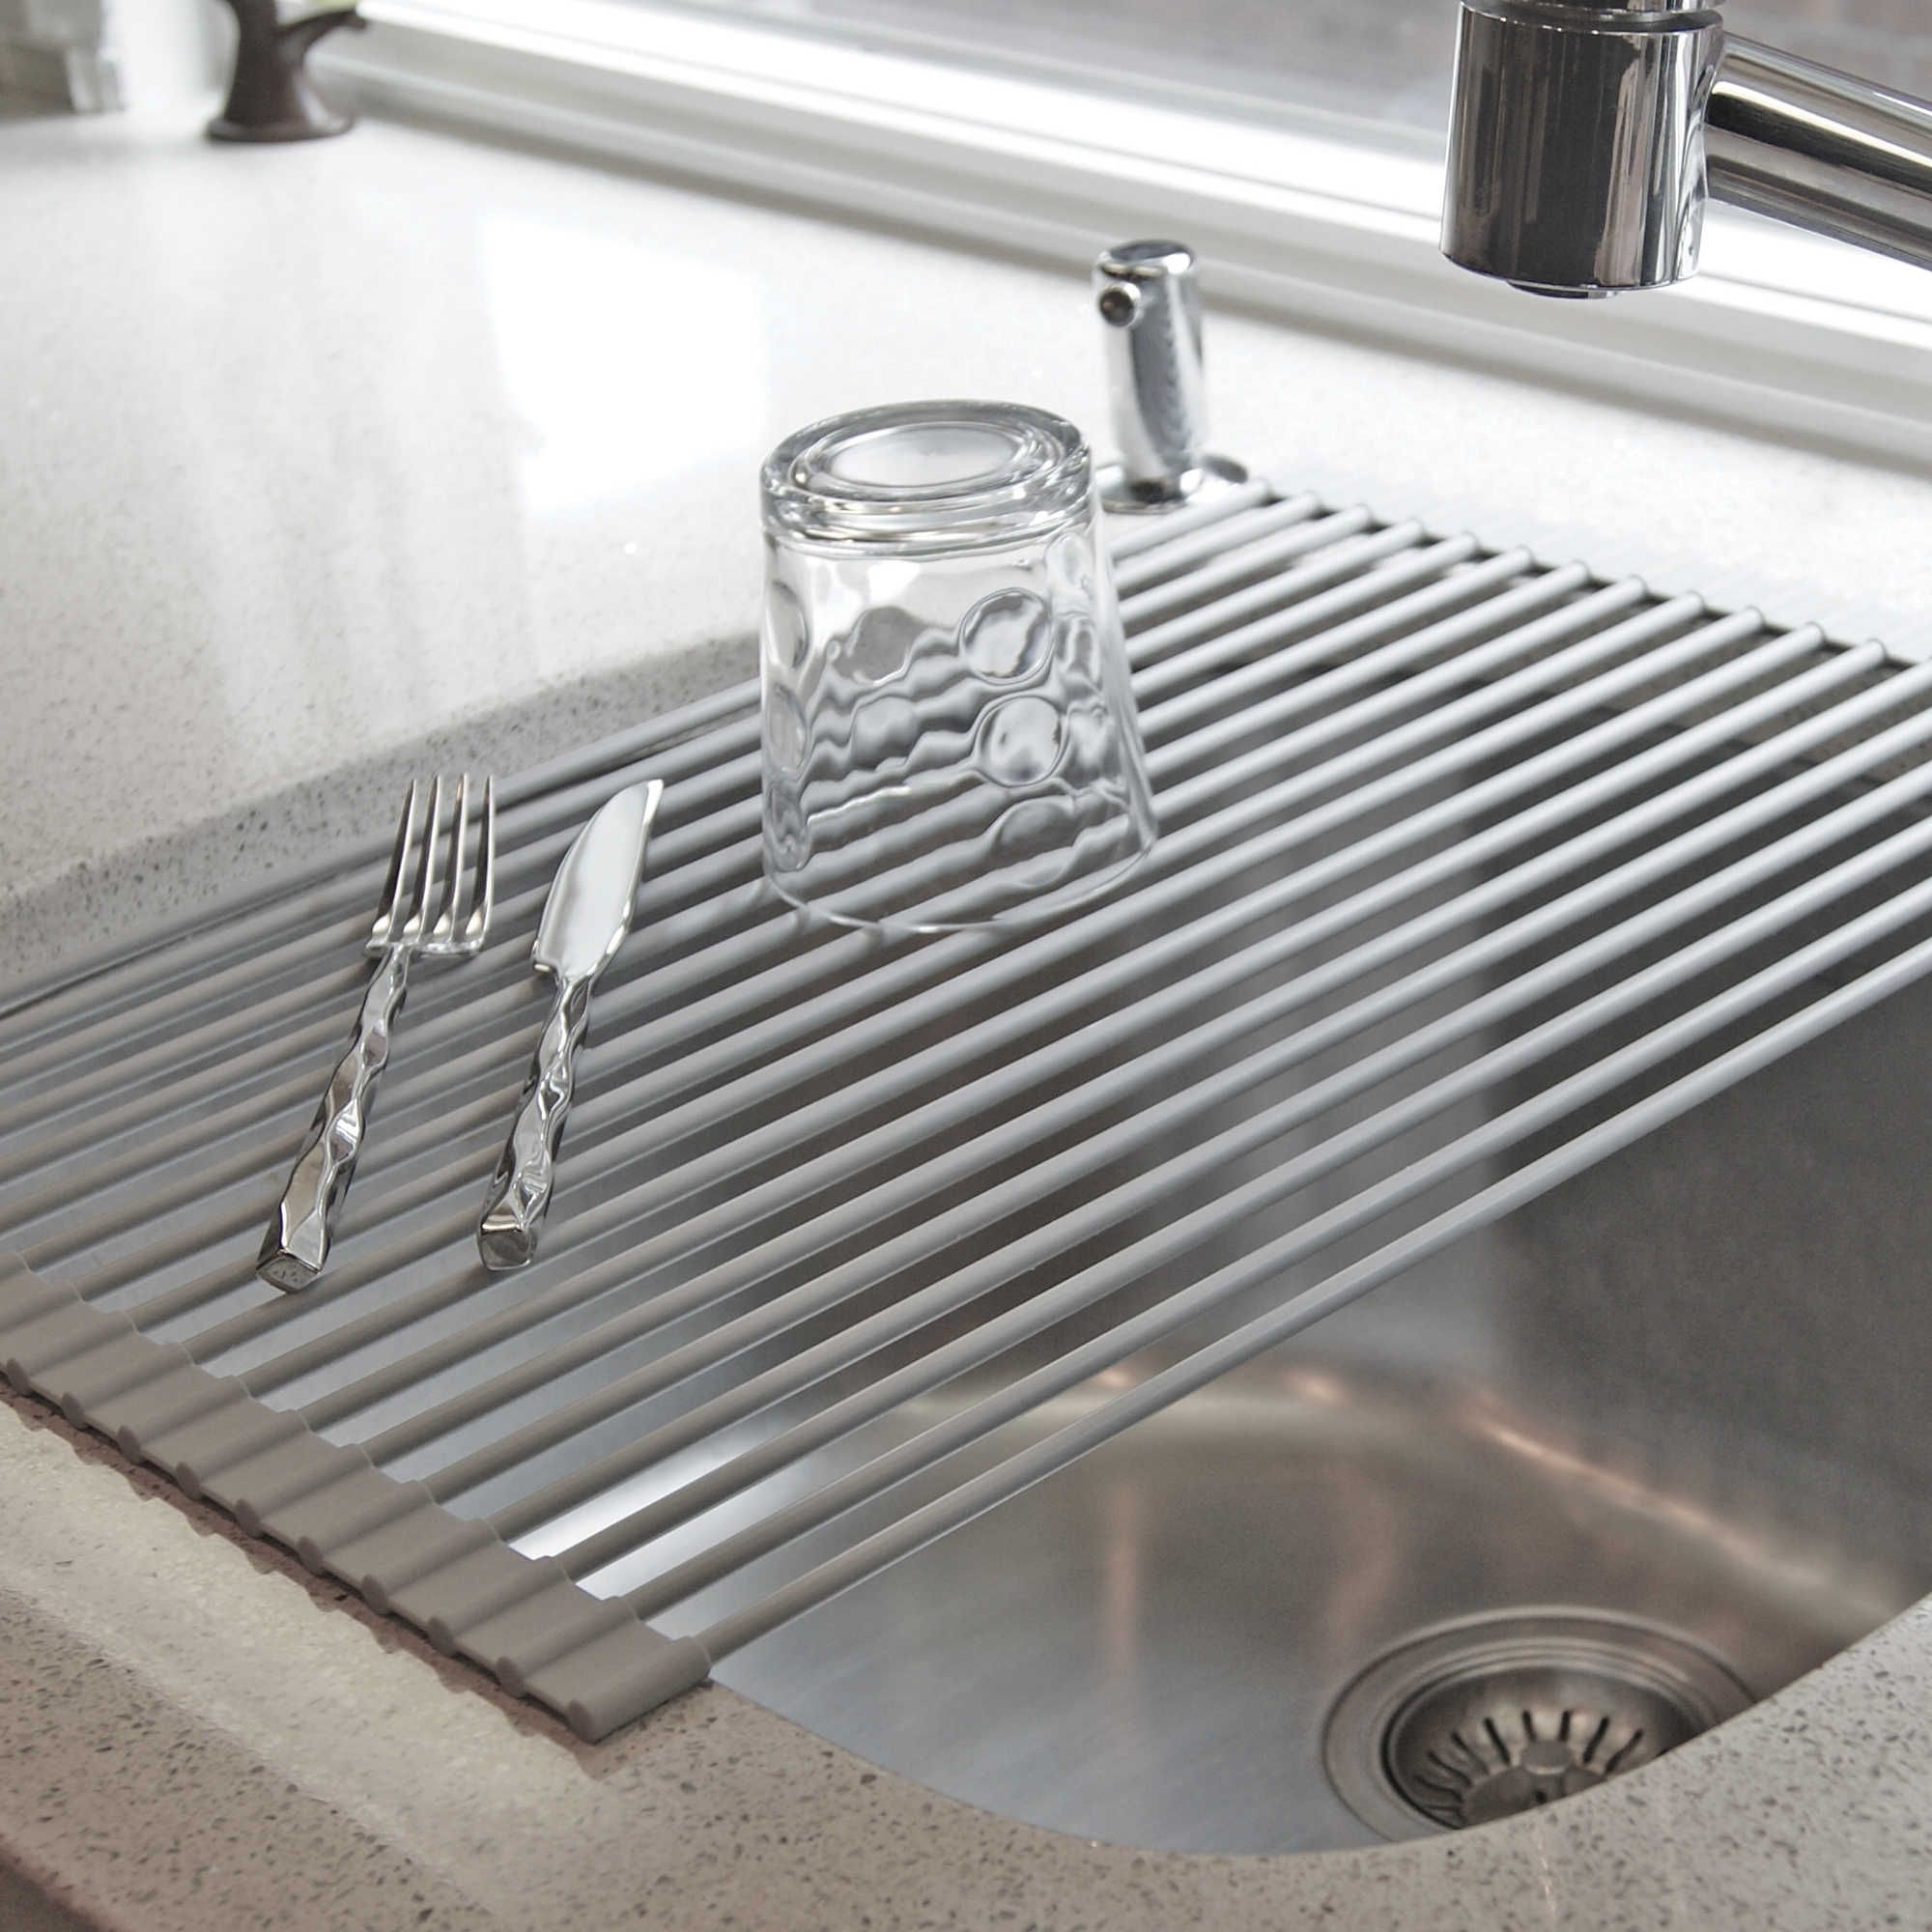 Apartment Kitchen Sink Backing Up: Over-the-Sink Roll-Up Drying Rack